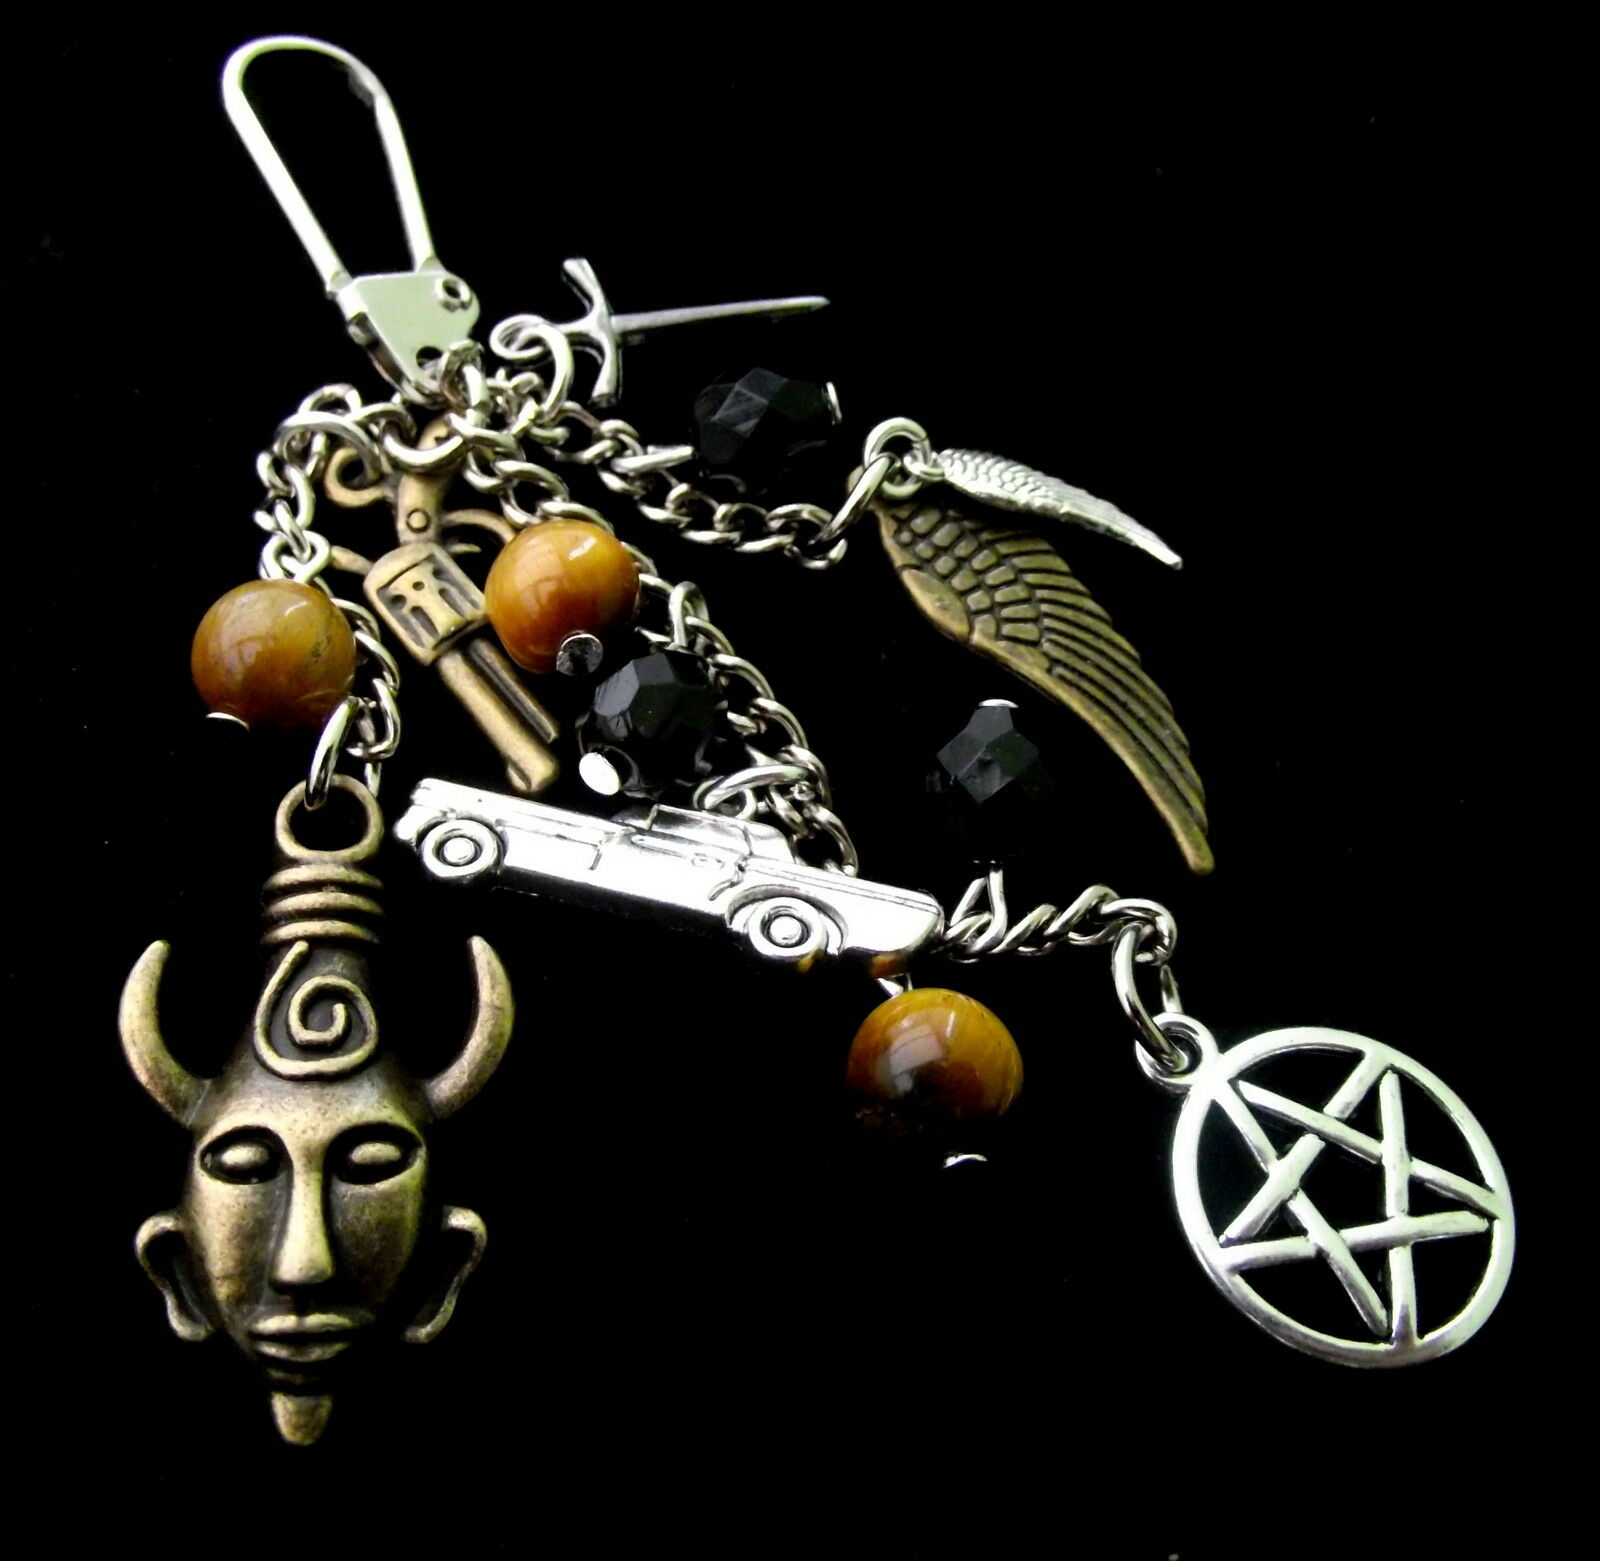 Supernatural Inspired Bag Charm! -Keychain with Pentagram, Angel Wing Charms etc